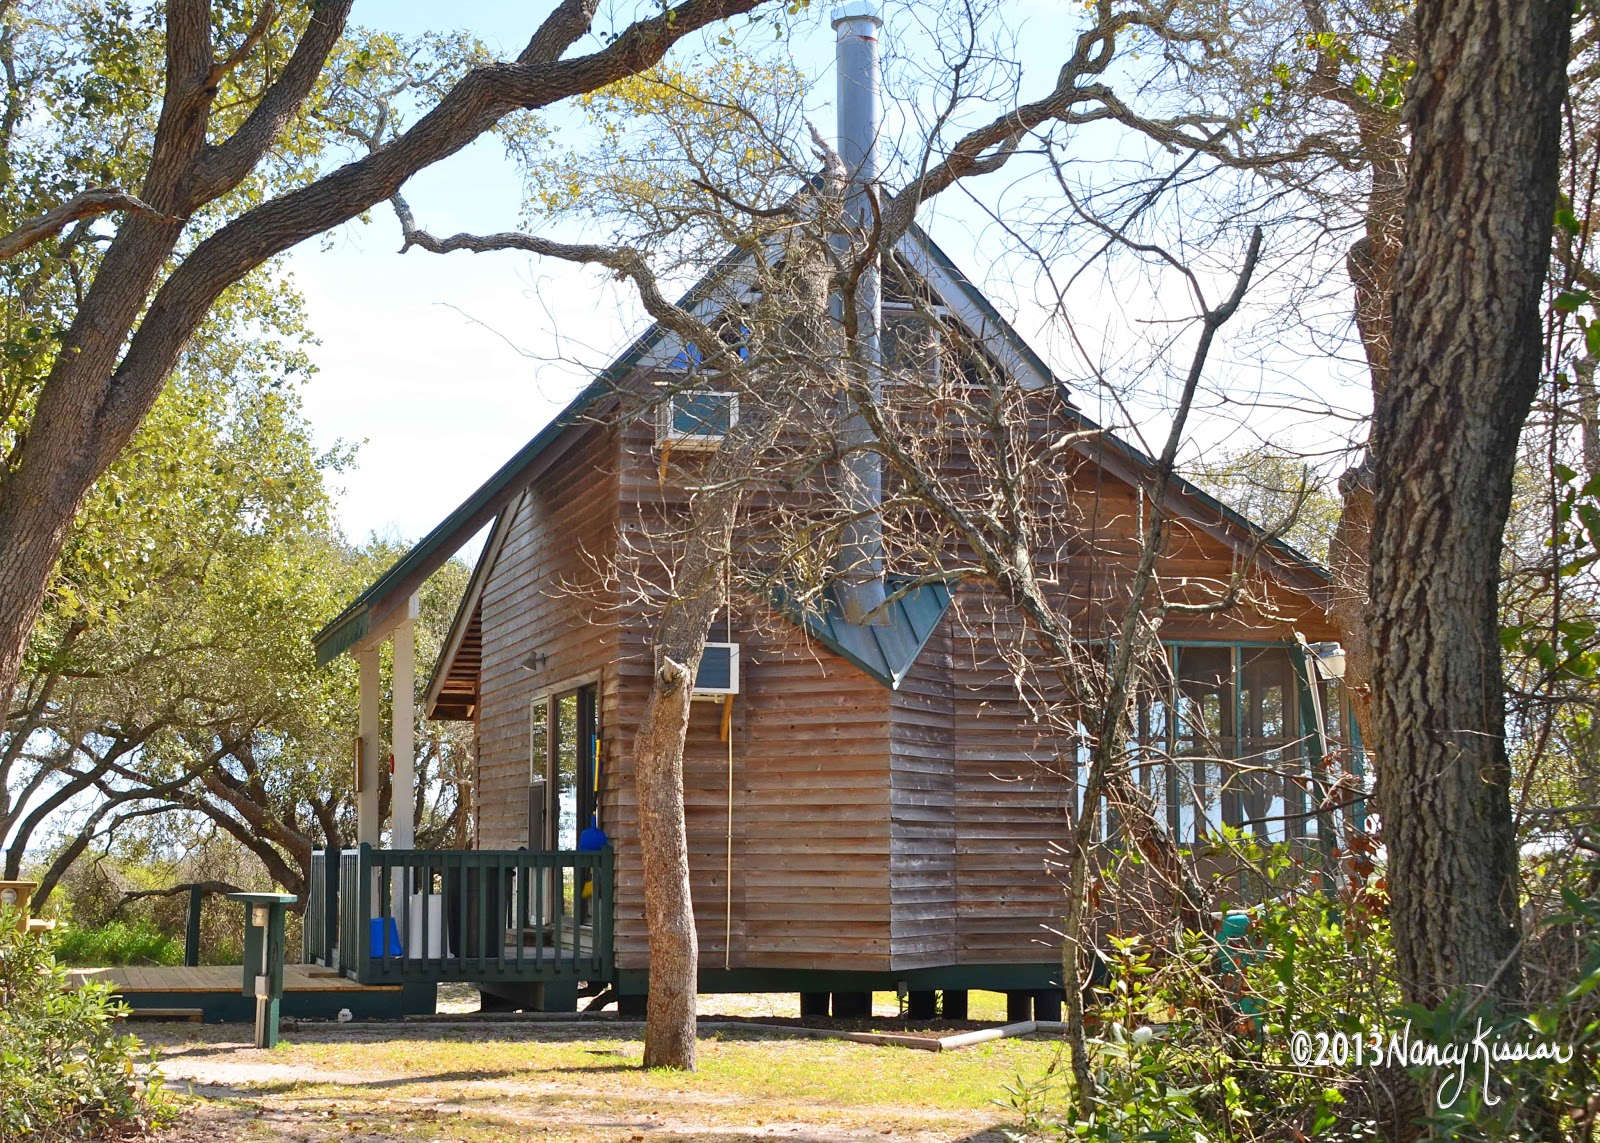 wild about texas heb rockport lodge cabins rh wildabouttexas blogspot com horizon cottages rockport tx horizon cottages rockport tx